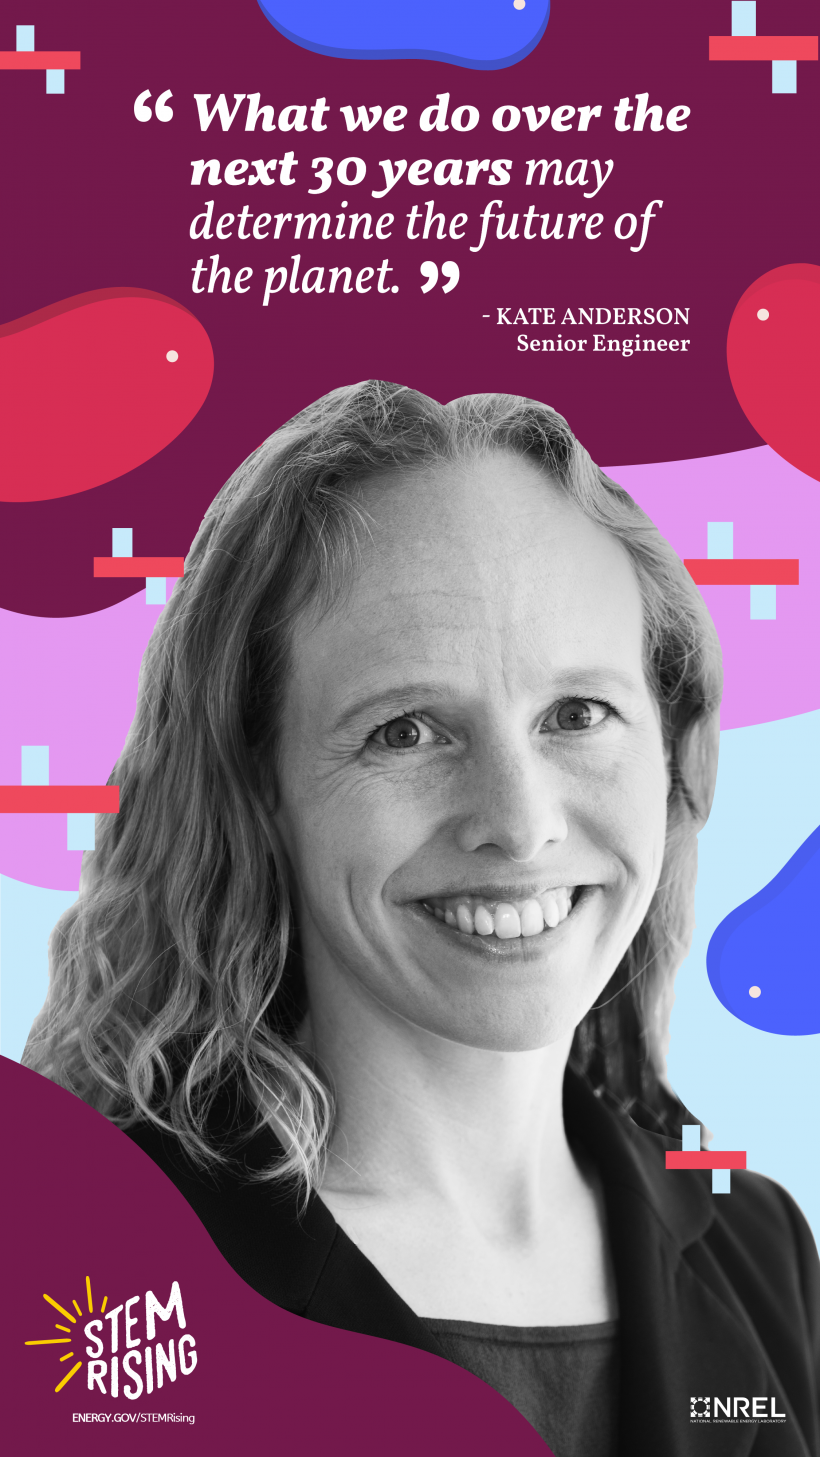 Kate Anderson is a Senior Engineer at the National Renewable Energy Laboratory.